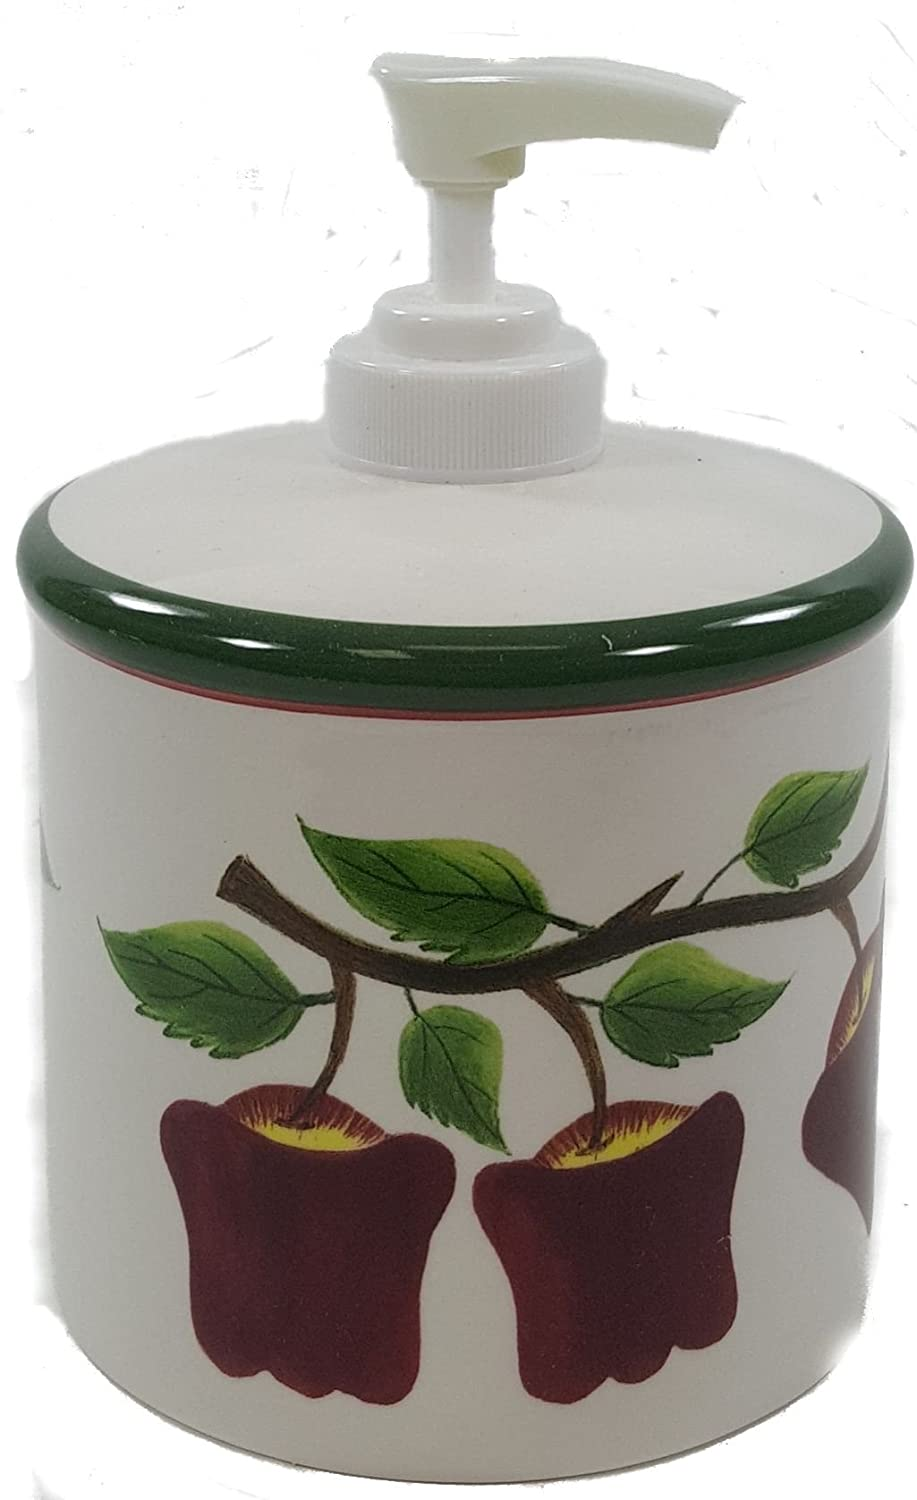 Apples Soap Dispenser